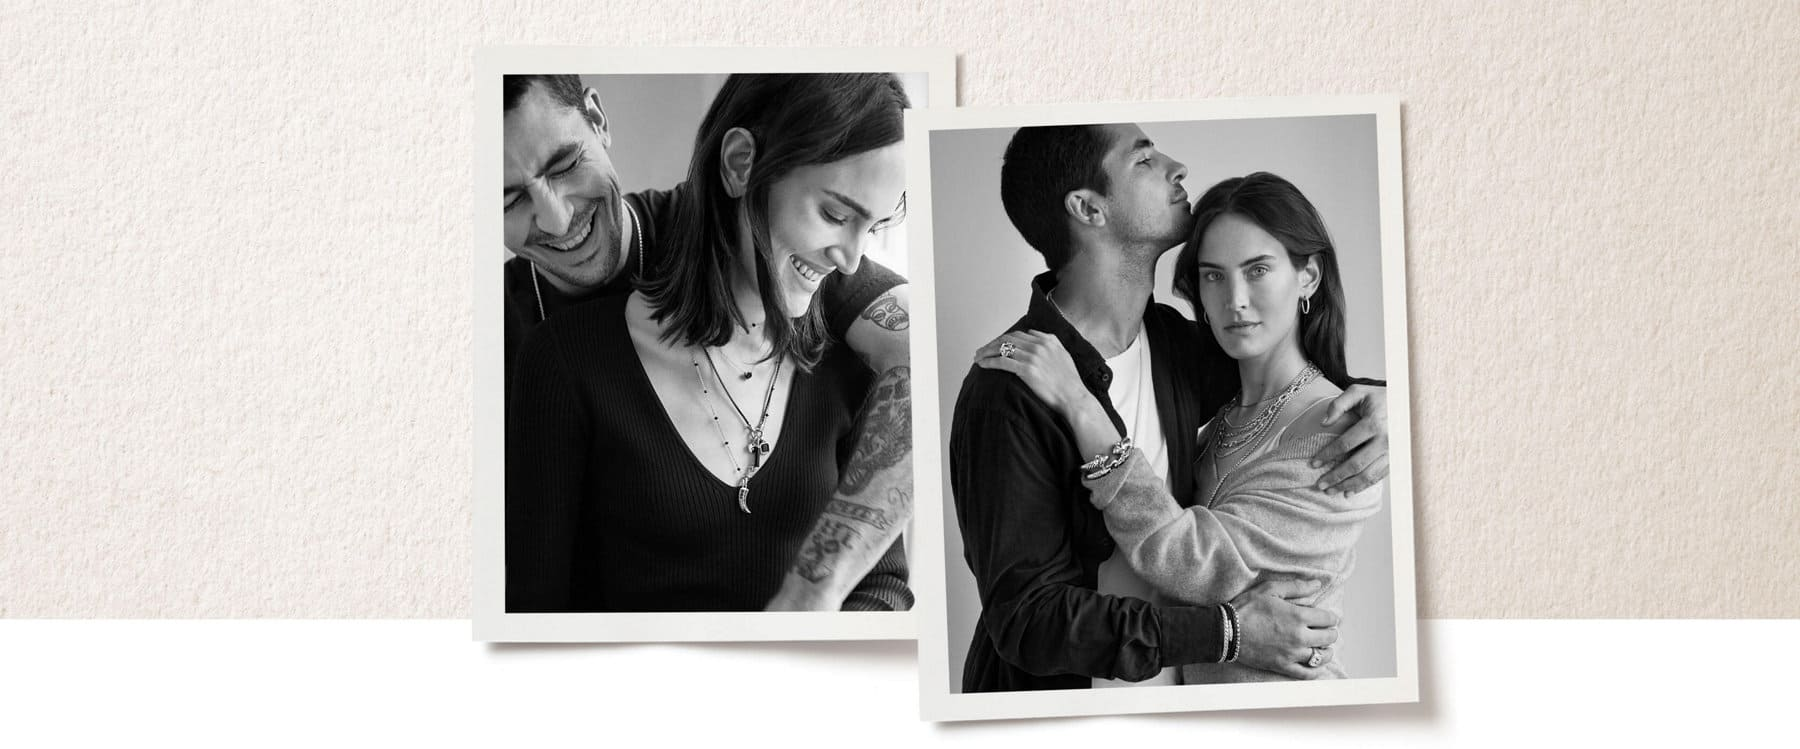 A collage of one color photo and one black-and-white photo is placed in a row on top of a light pink-and-white background. The two photos show Juliette and Miles about to kiss or smiling while wearing various David Yurman jewelry designs. Below the photo collage is a color video featuring Miles and Juliette talking about their relationship.